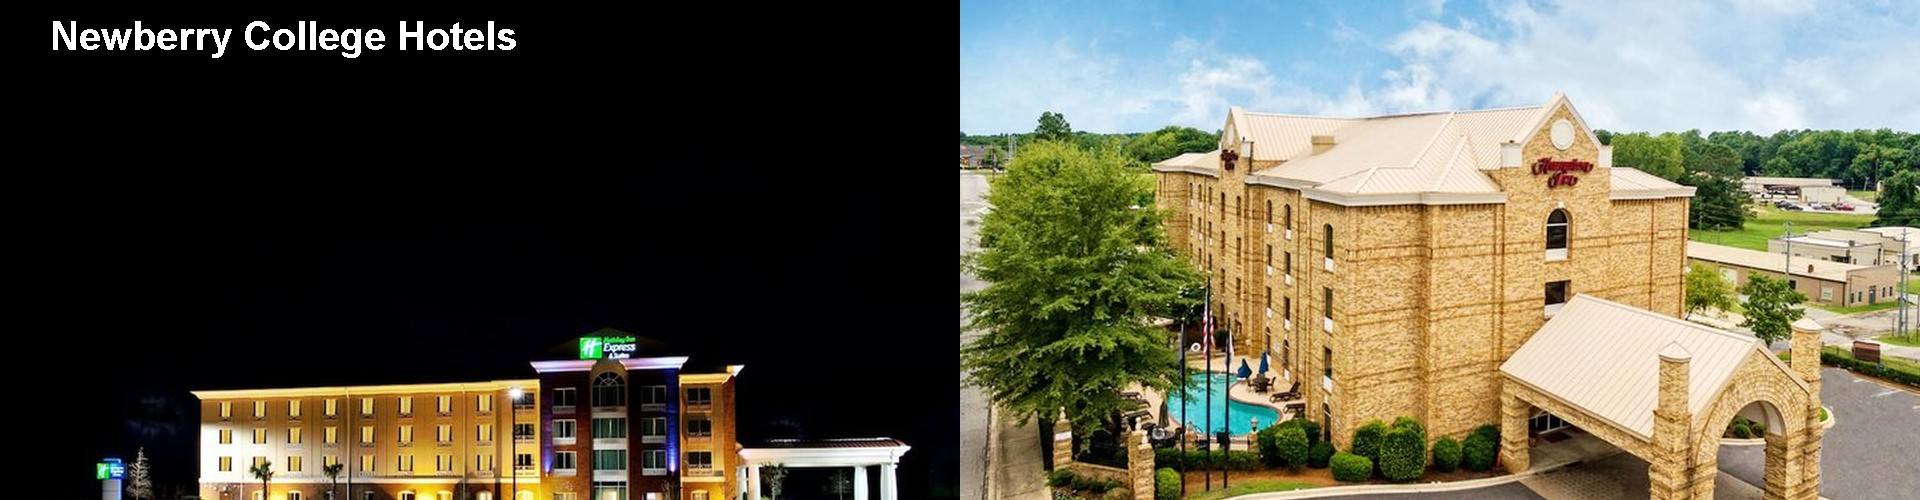 5 Best Hotels near Newberry College